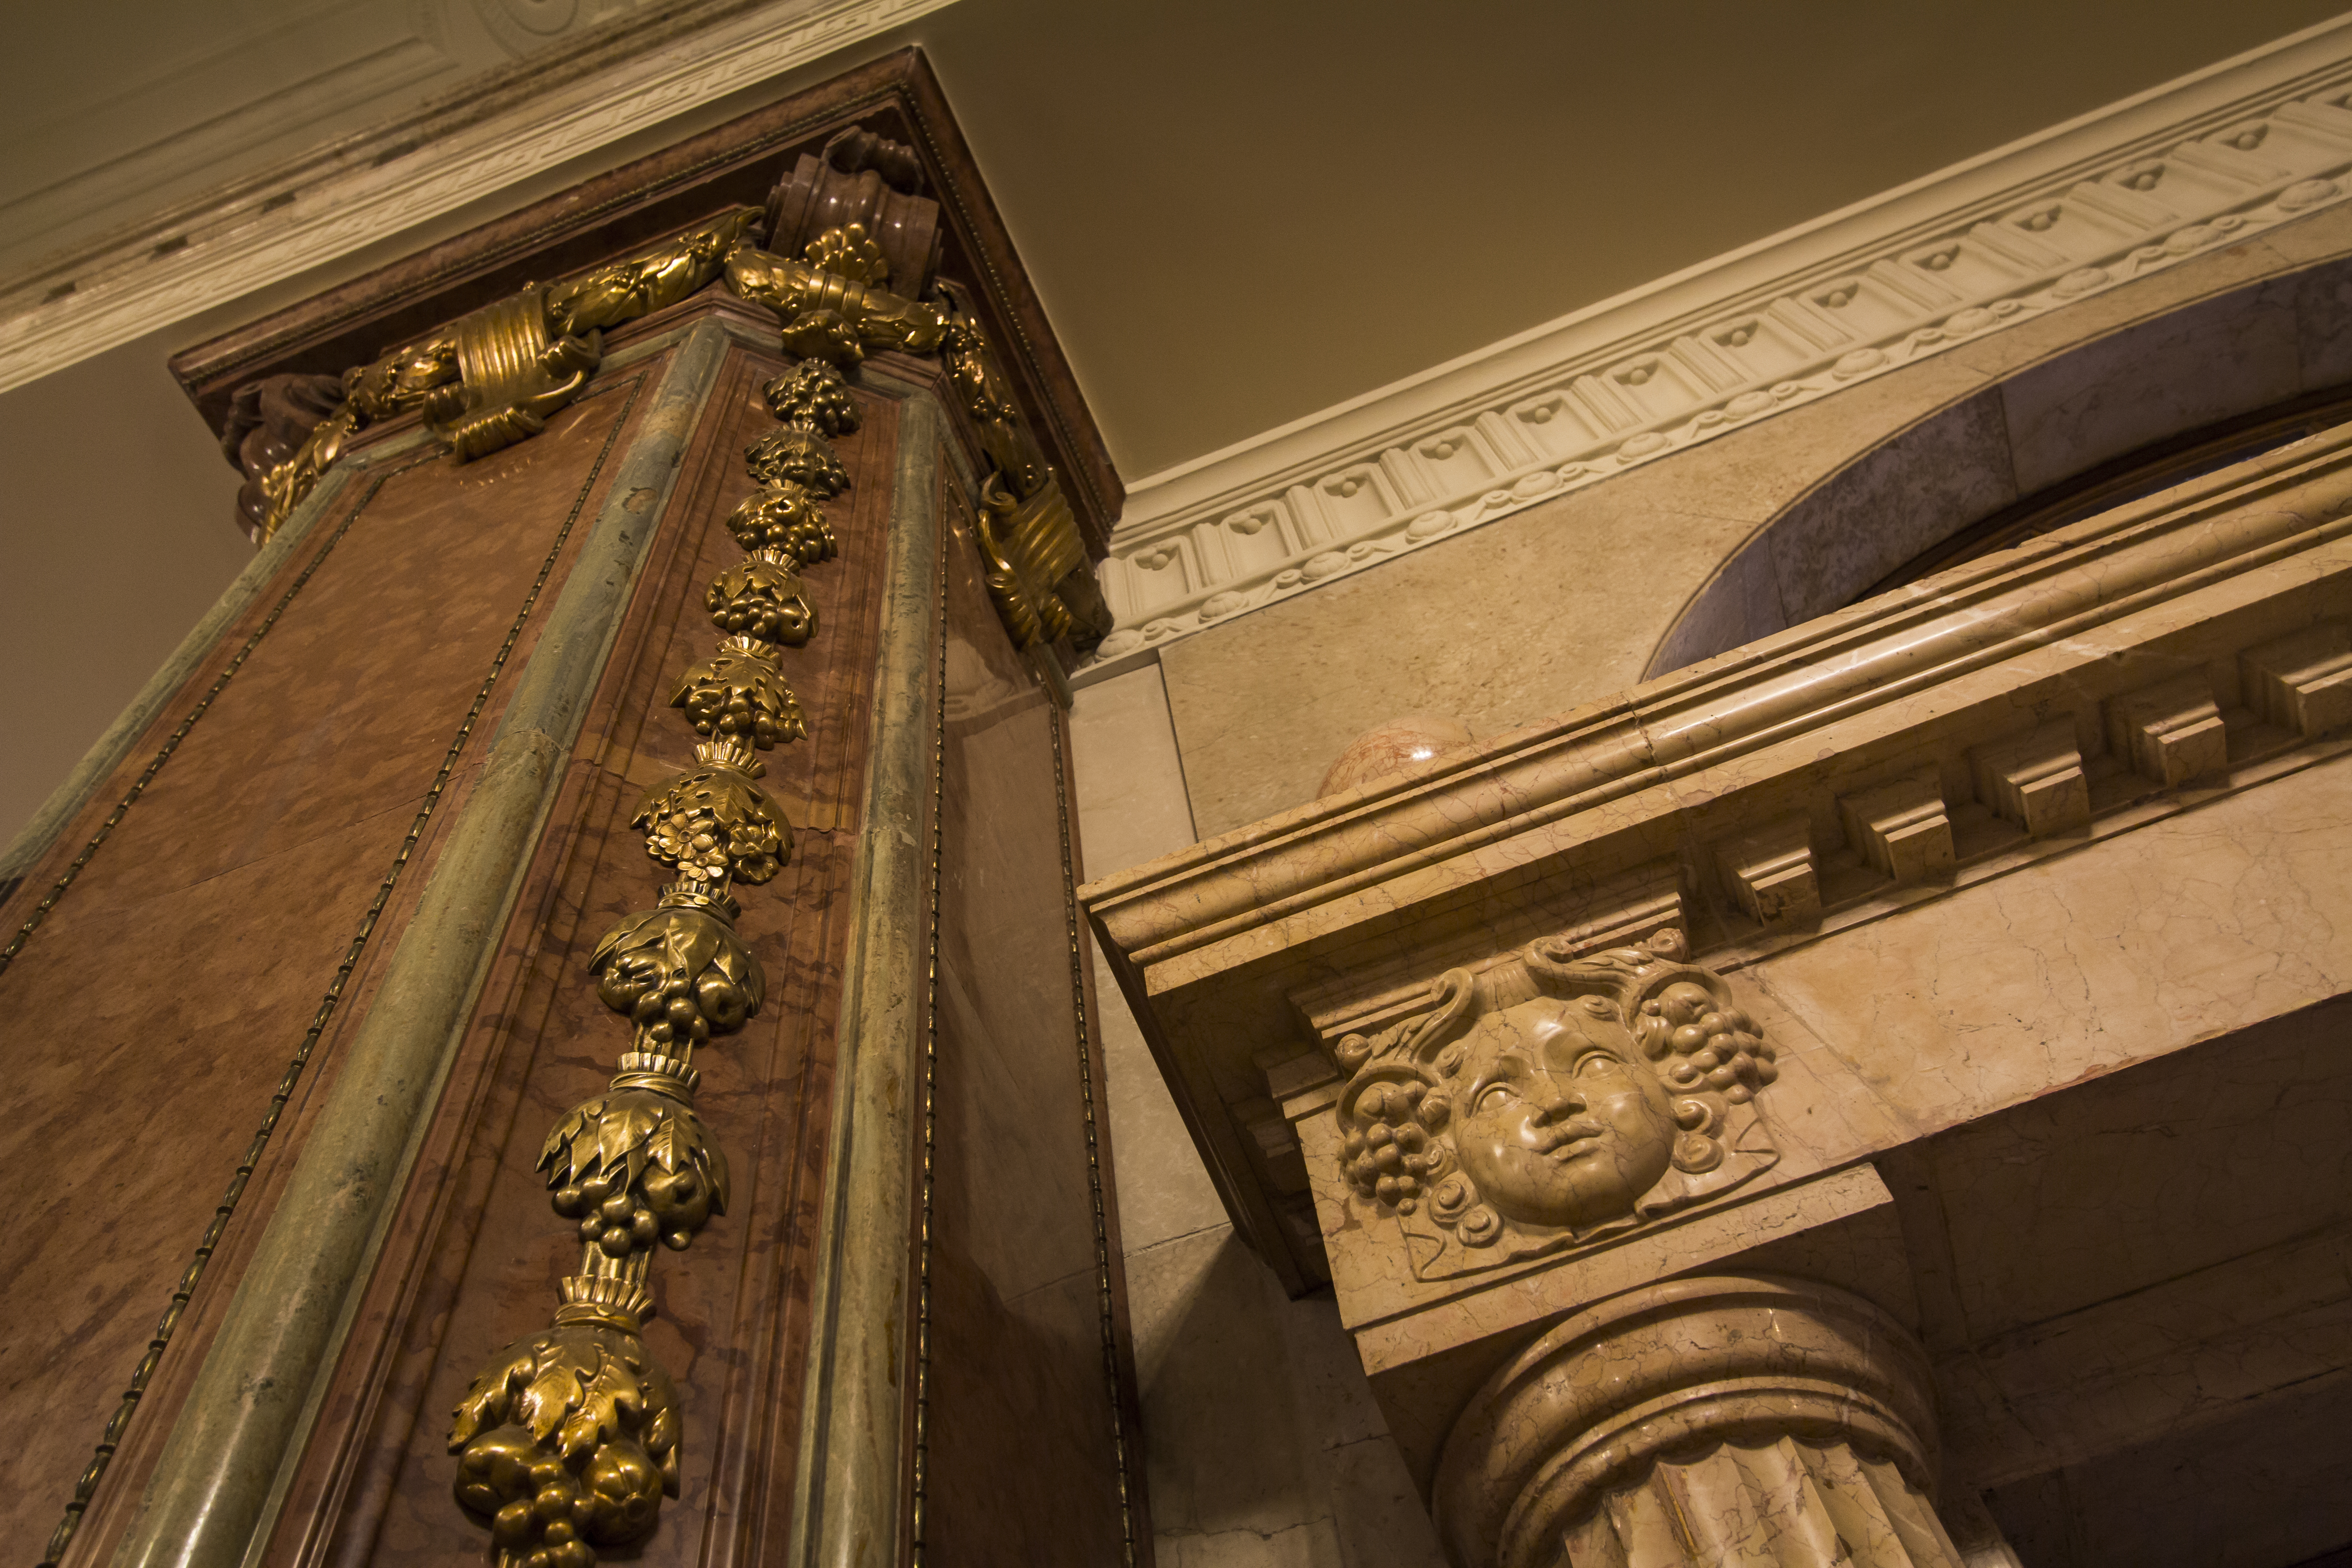 16._red_marble_columns_and_relief_in_the_heritage_area_vaci1_budapest_hungary